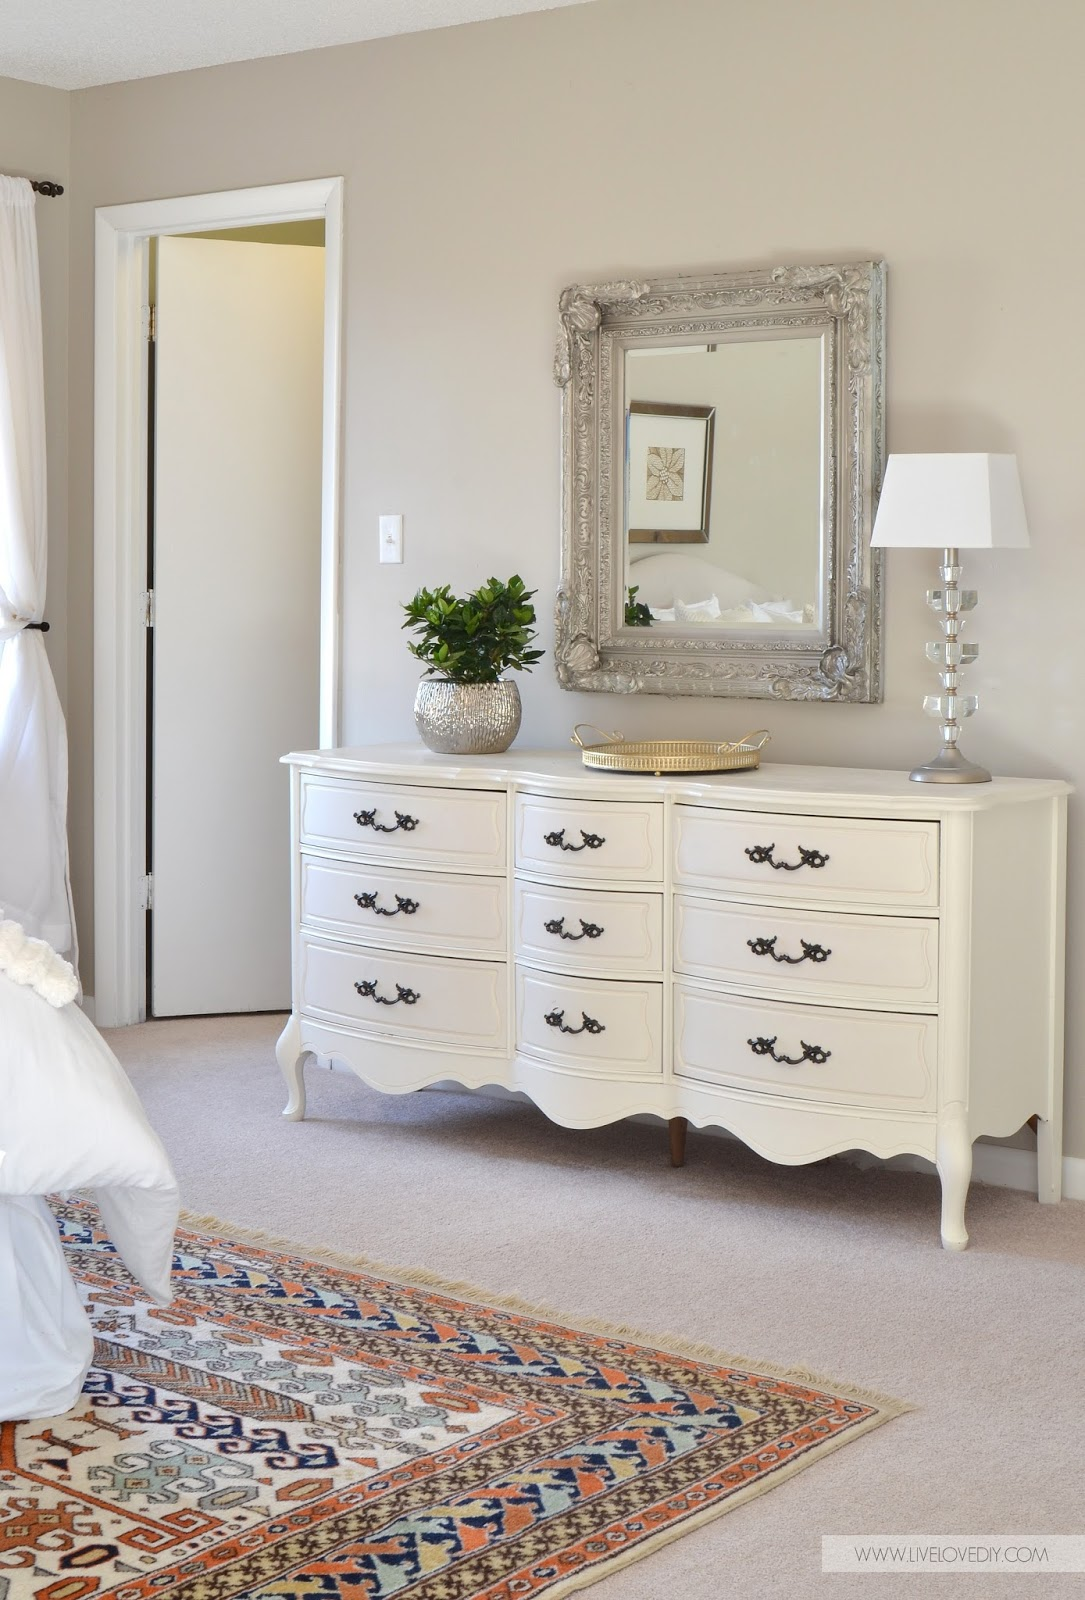 White glamorous vintage dresser in bedroom